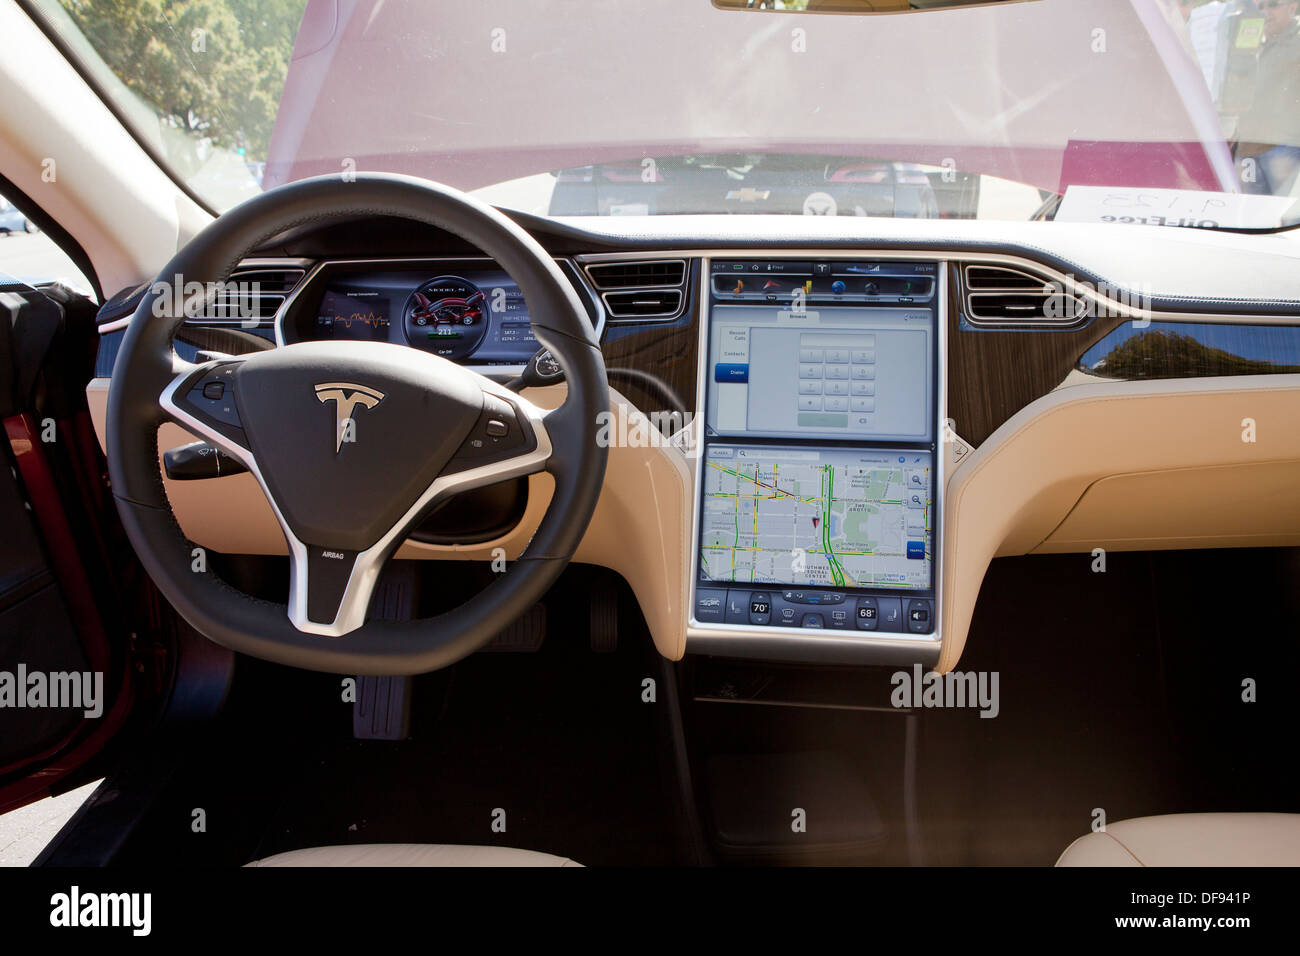 Tesla model s electric car interior stock photo 61051698 alamy tesla model s electric car interior malvernweather Image collections